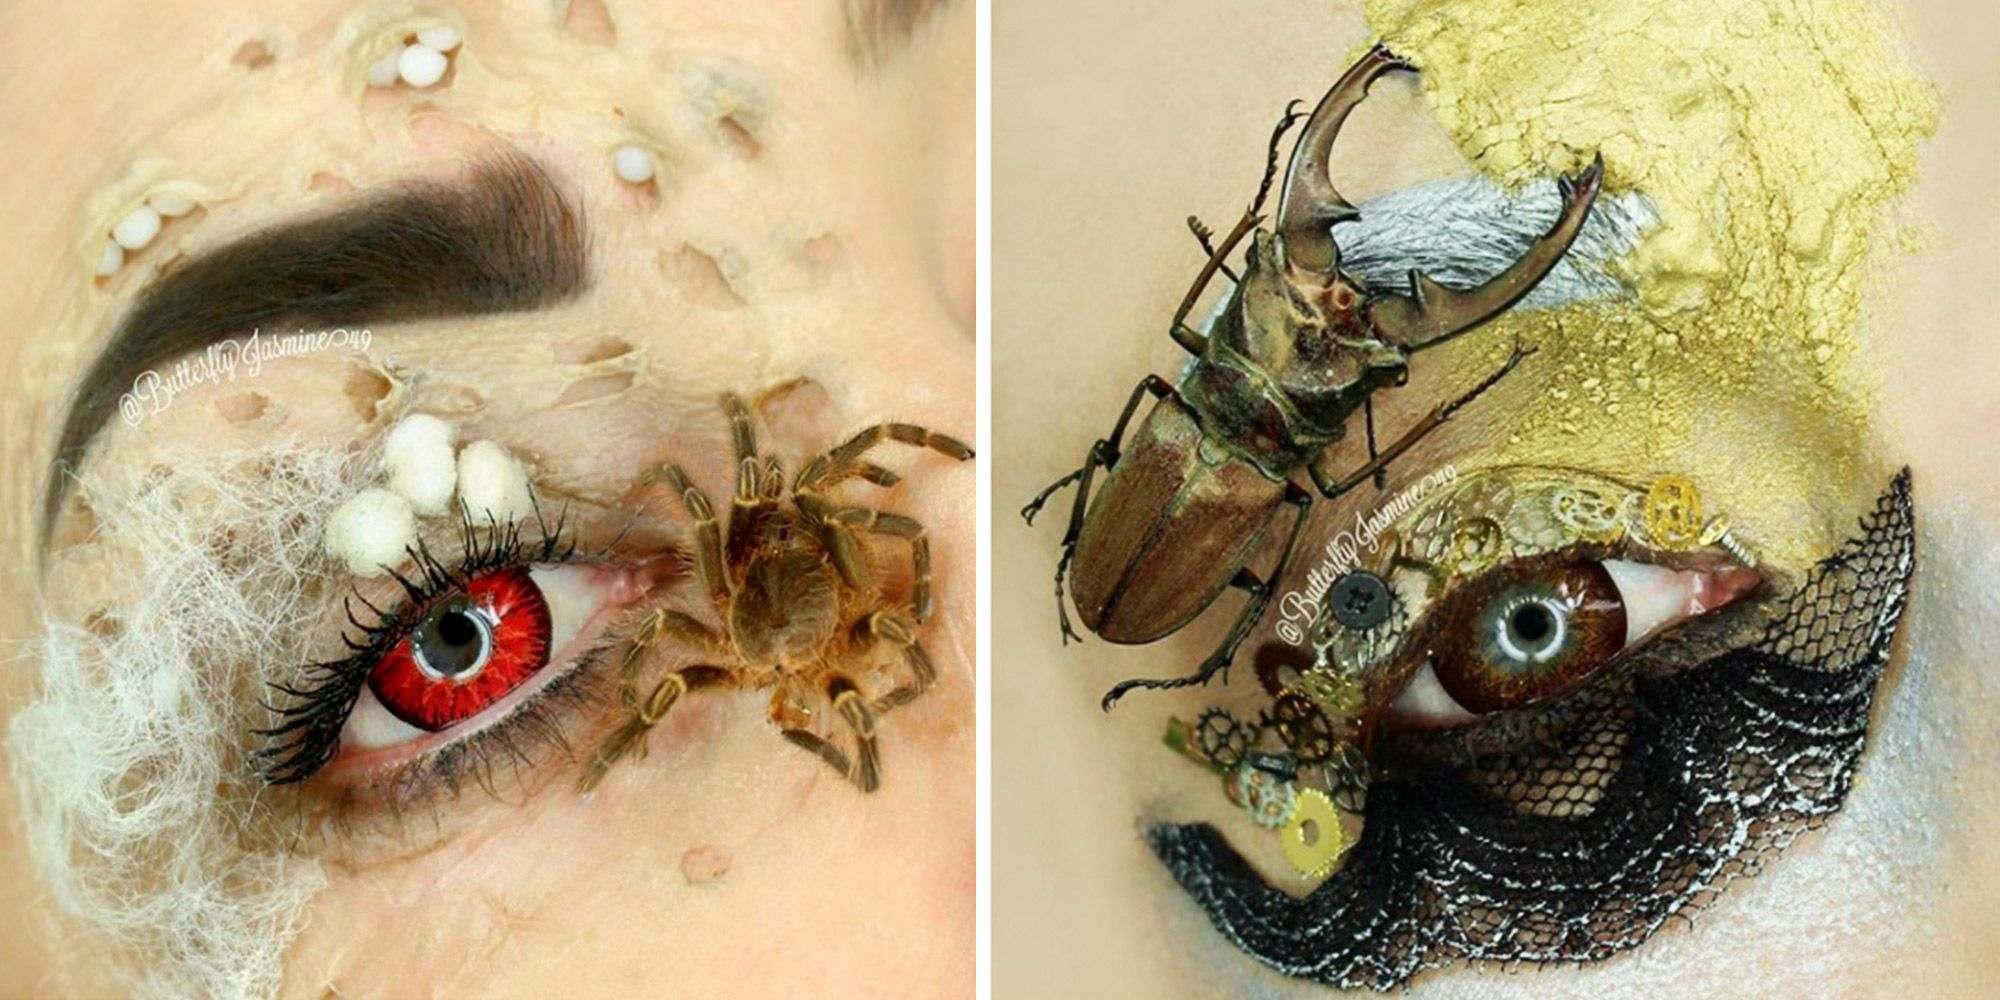 This Makeup Artist Uses Real Bugs on Her Face and We're Going to Cry